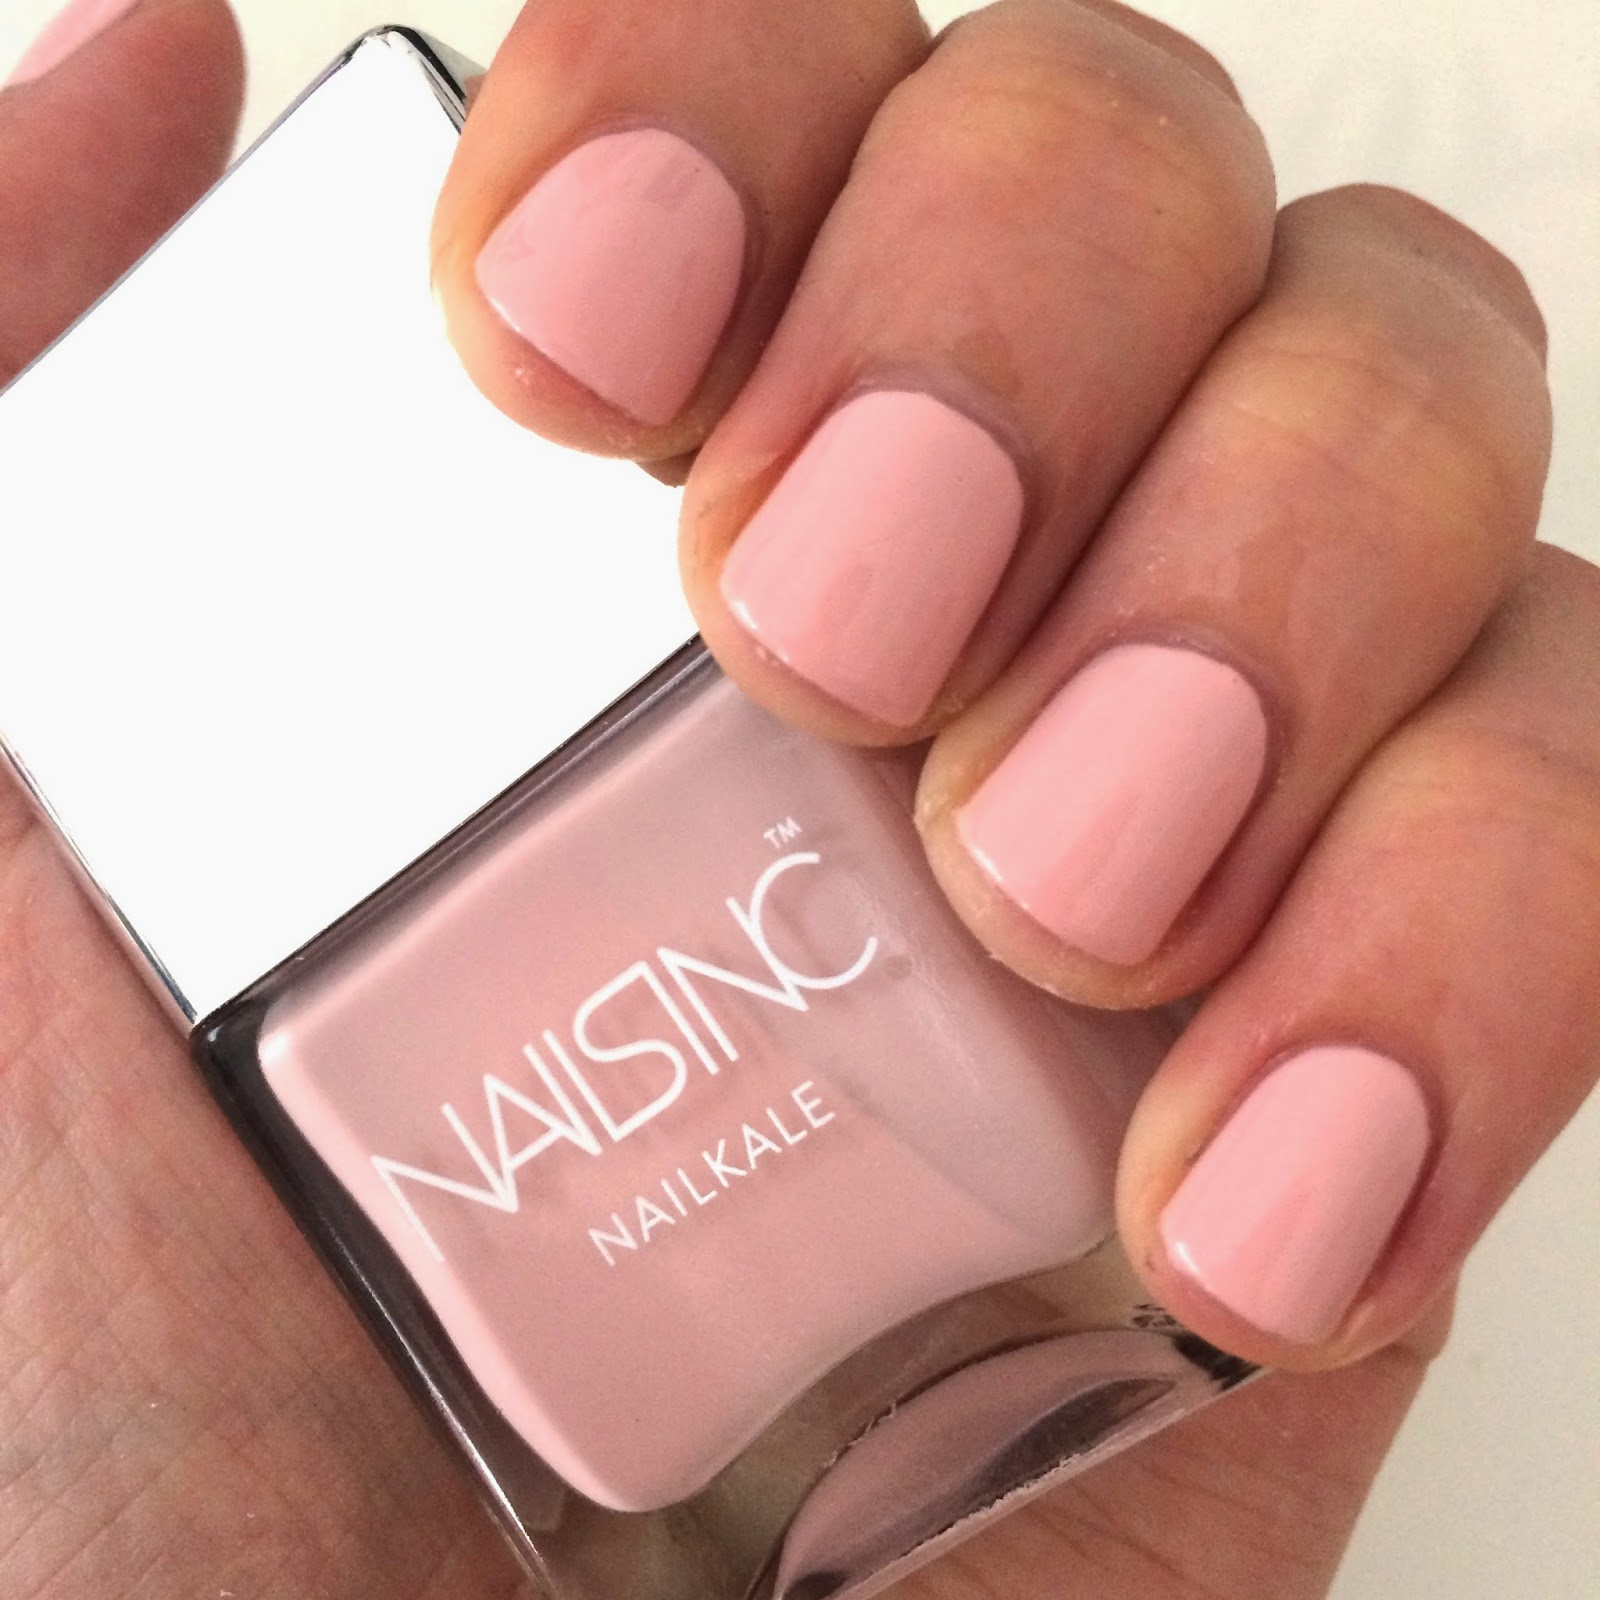 NailsInc NailKale in \'Mayfair Lane\' | Perfectly Polished